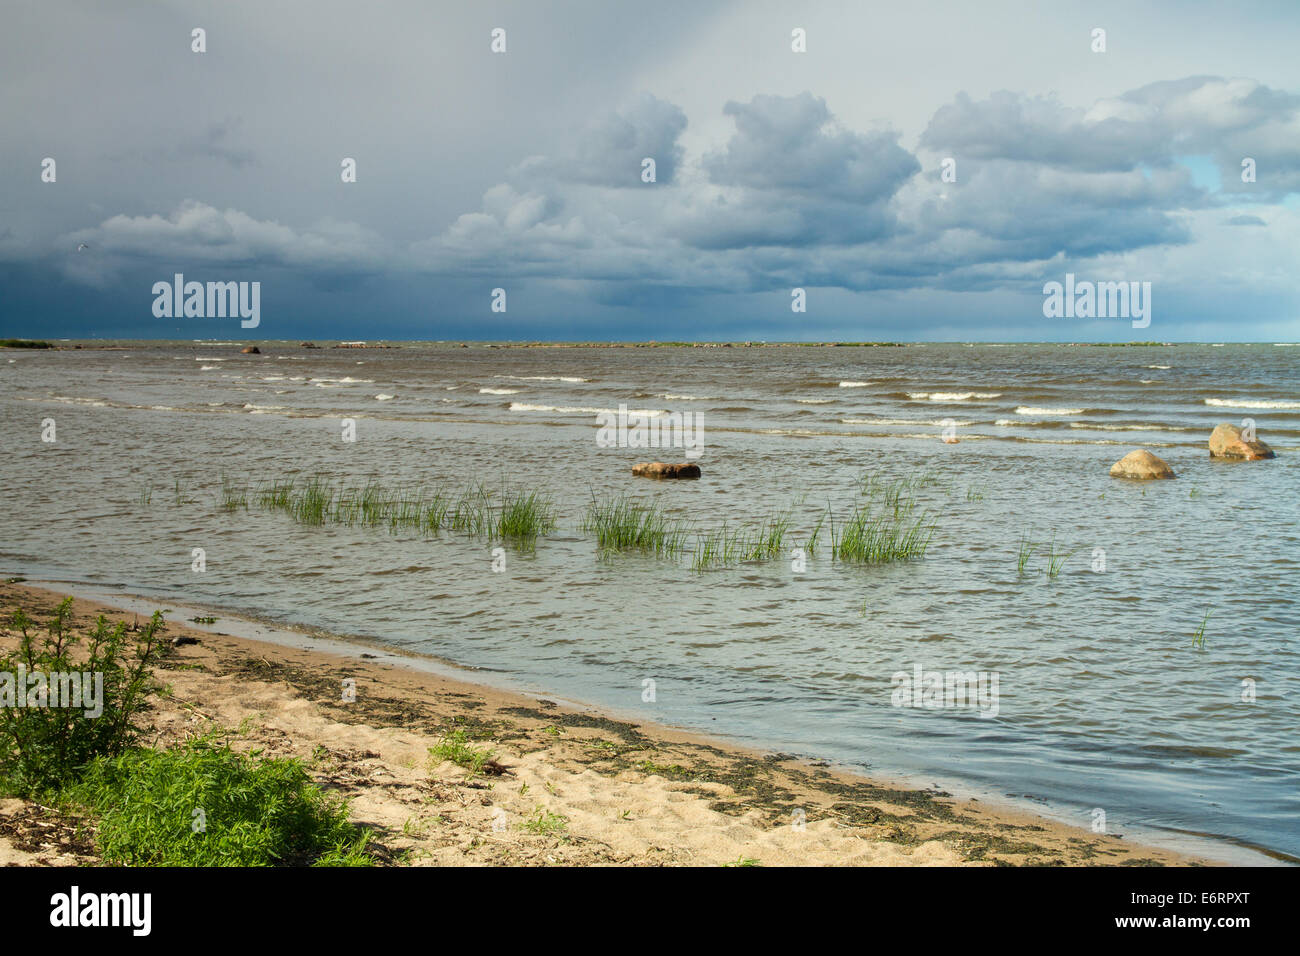 Baltic Sea In Summer Beautiful Places In Europe Stock Photo Royalty Free Image 73052304 Alamy